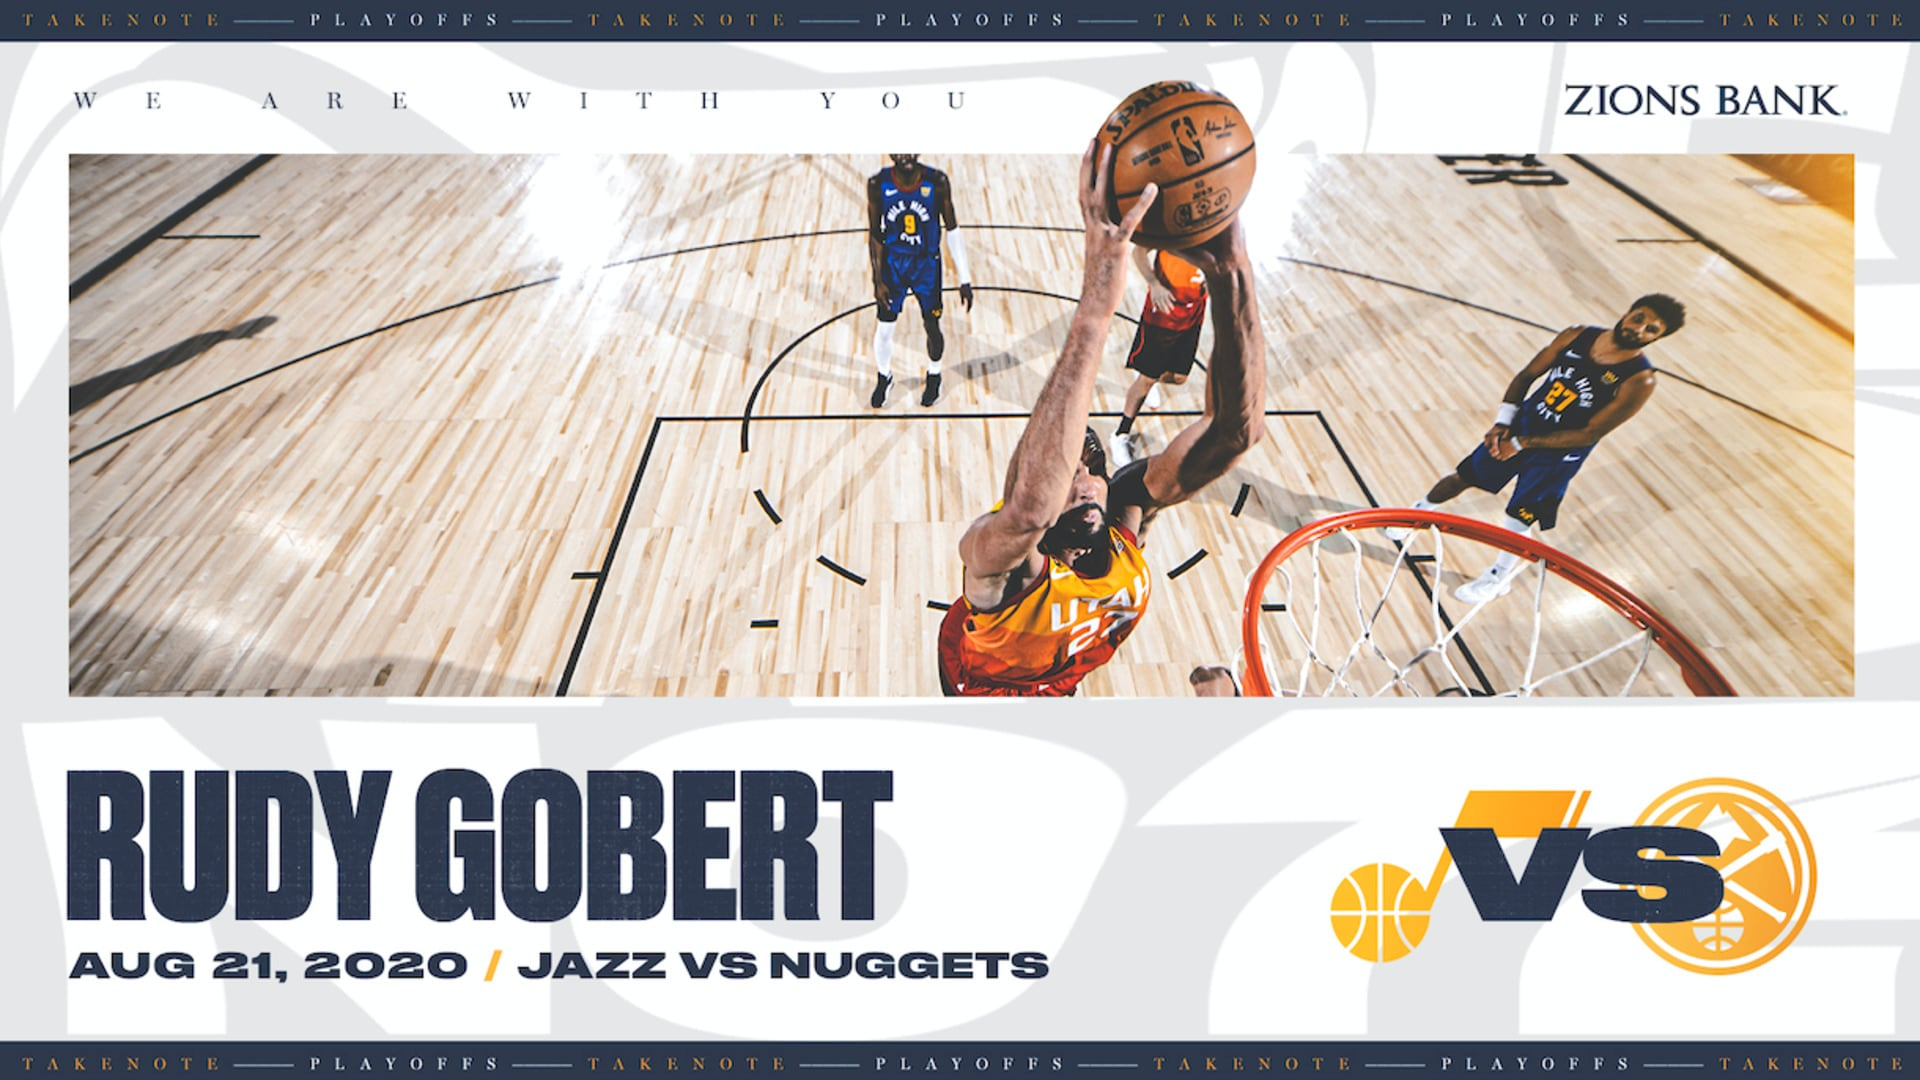 Highlights: Rudy Gobert — 24 points, 14 rebounds